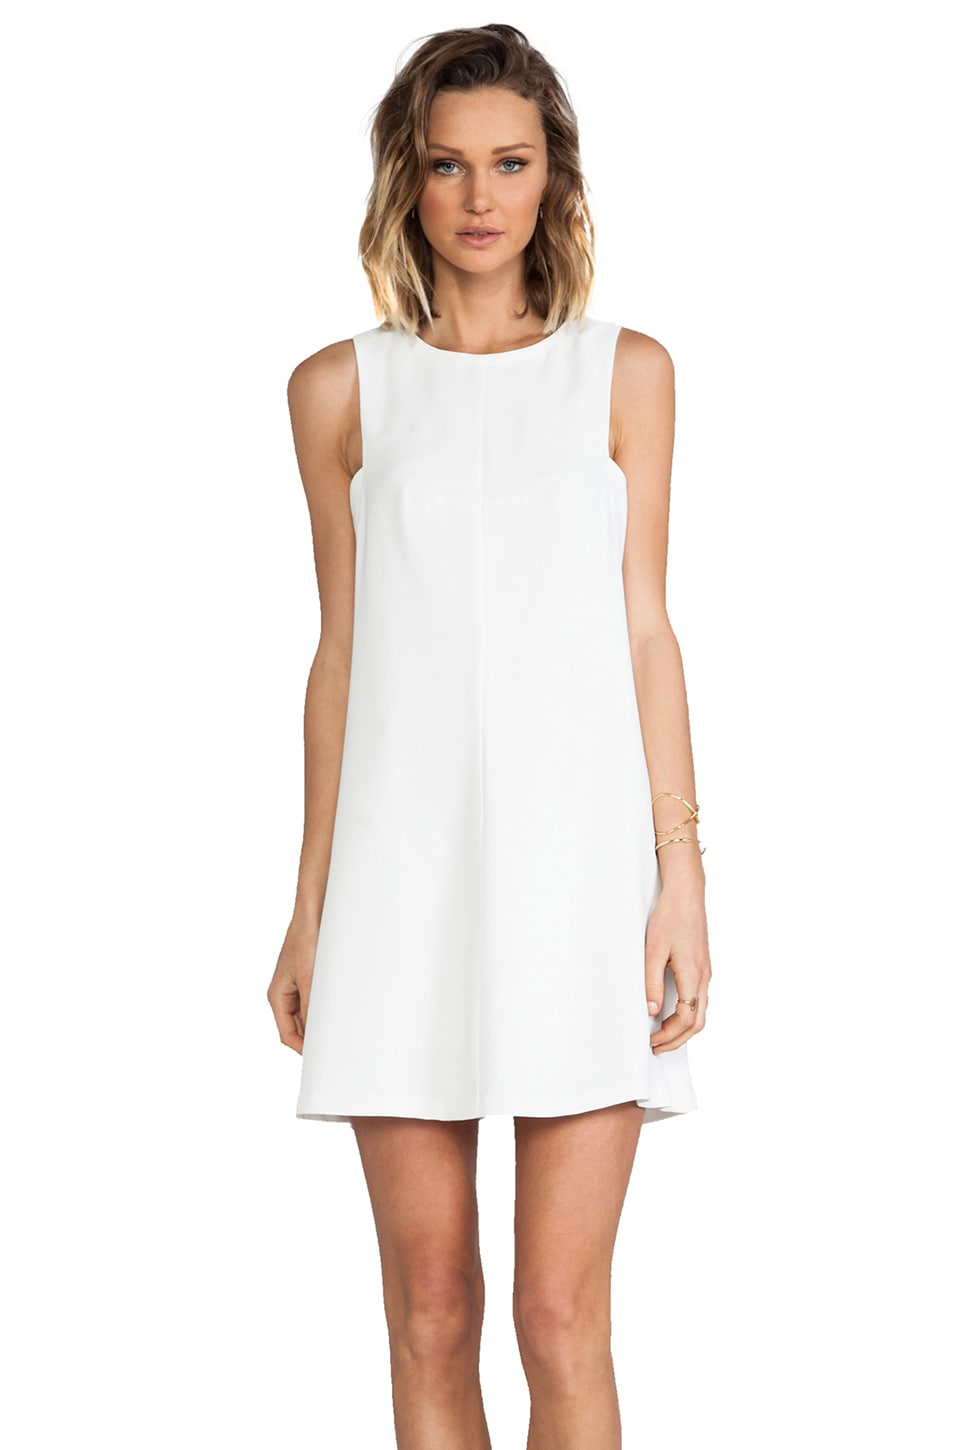 Trina Turk Lysett Dress in Whitewash